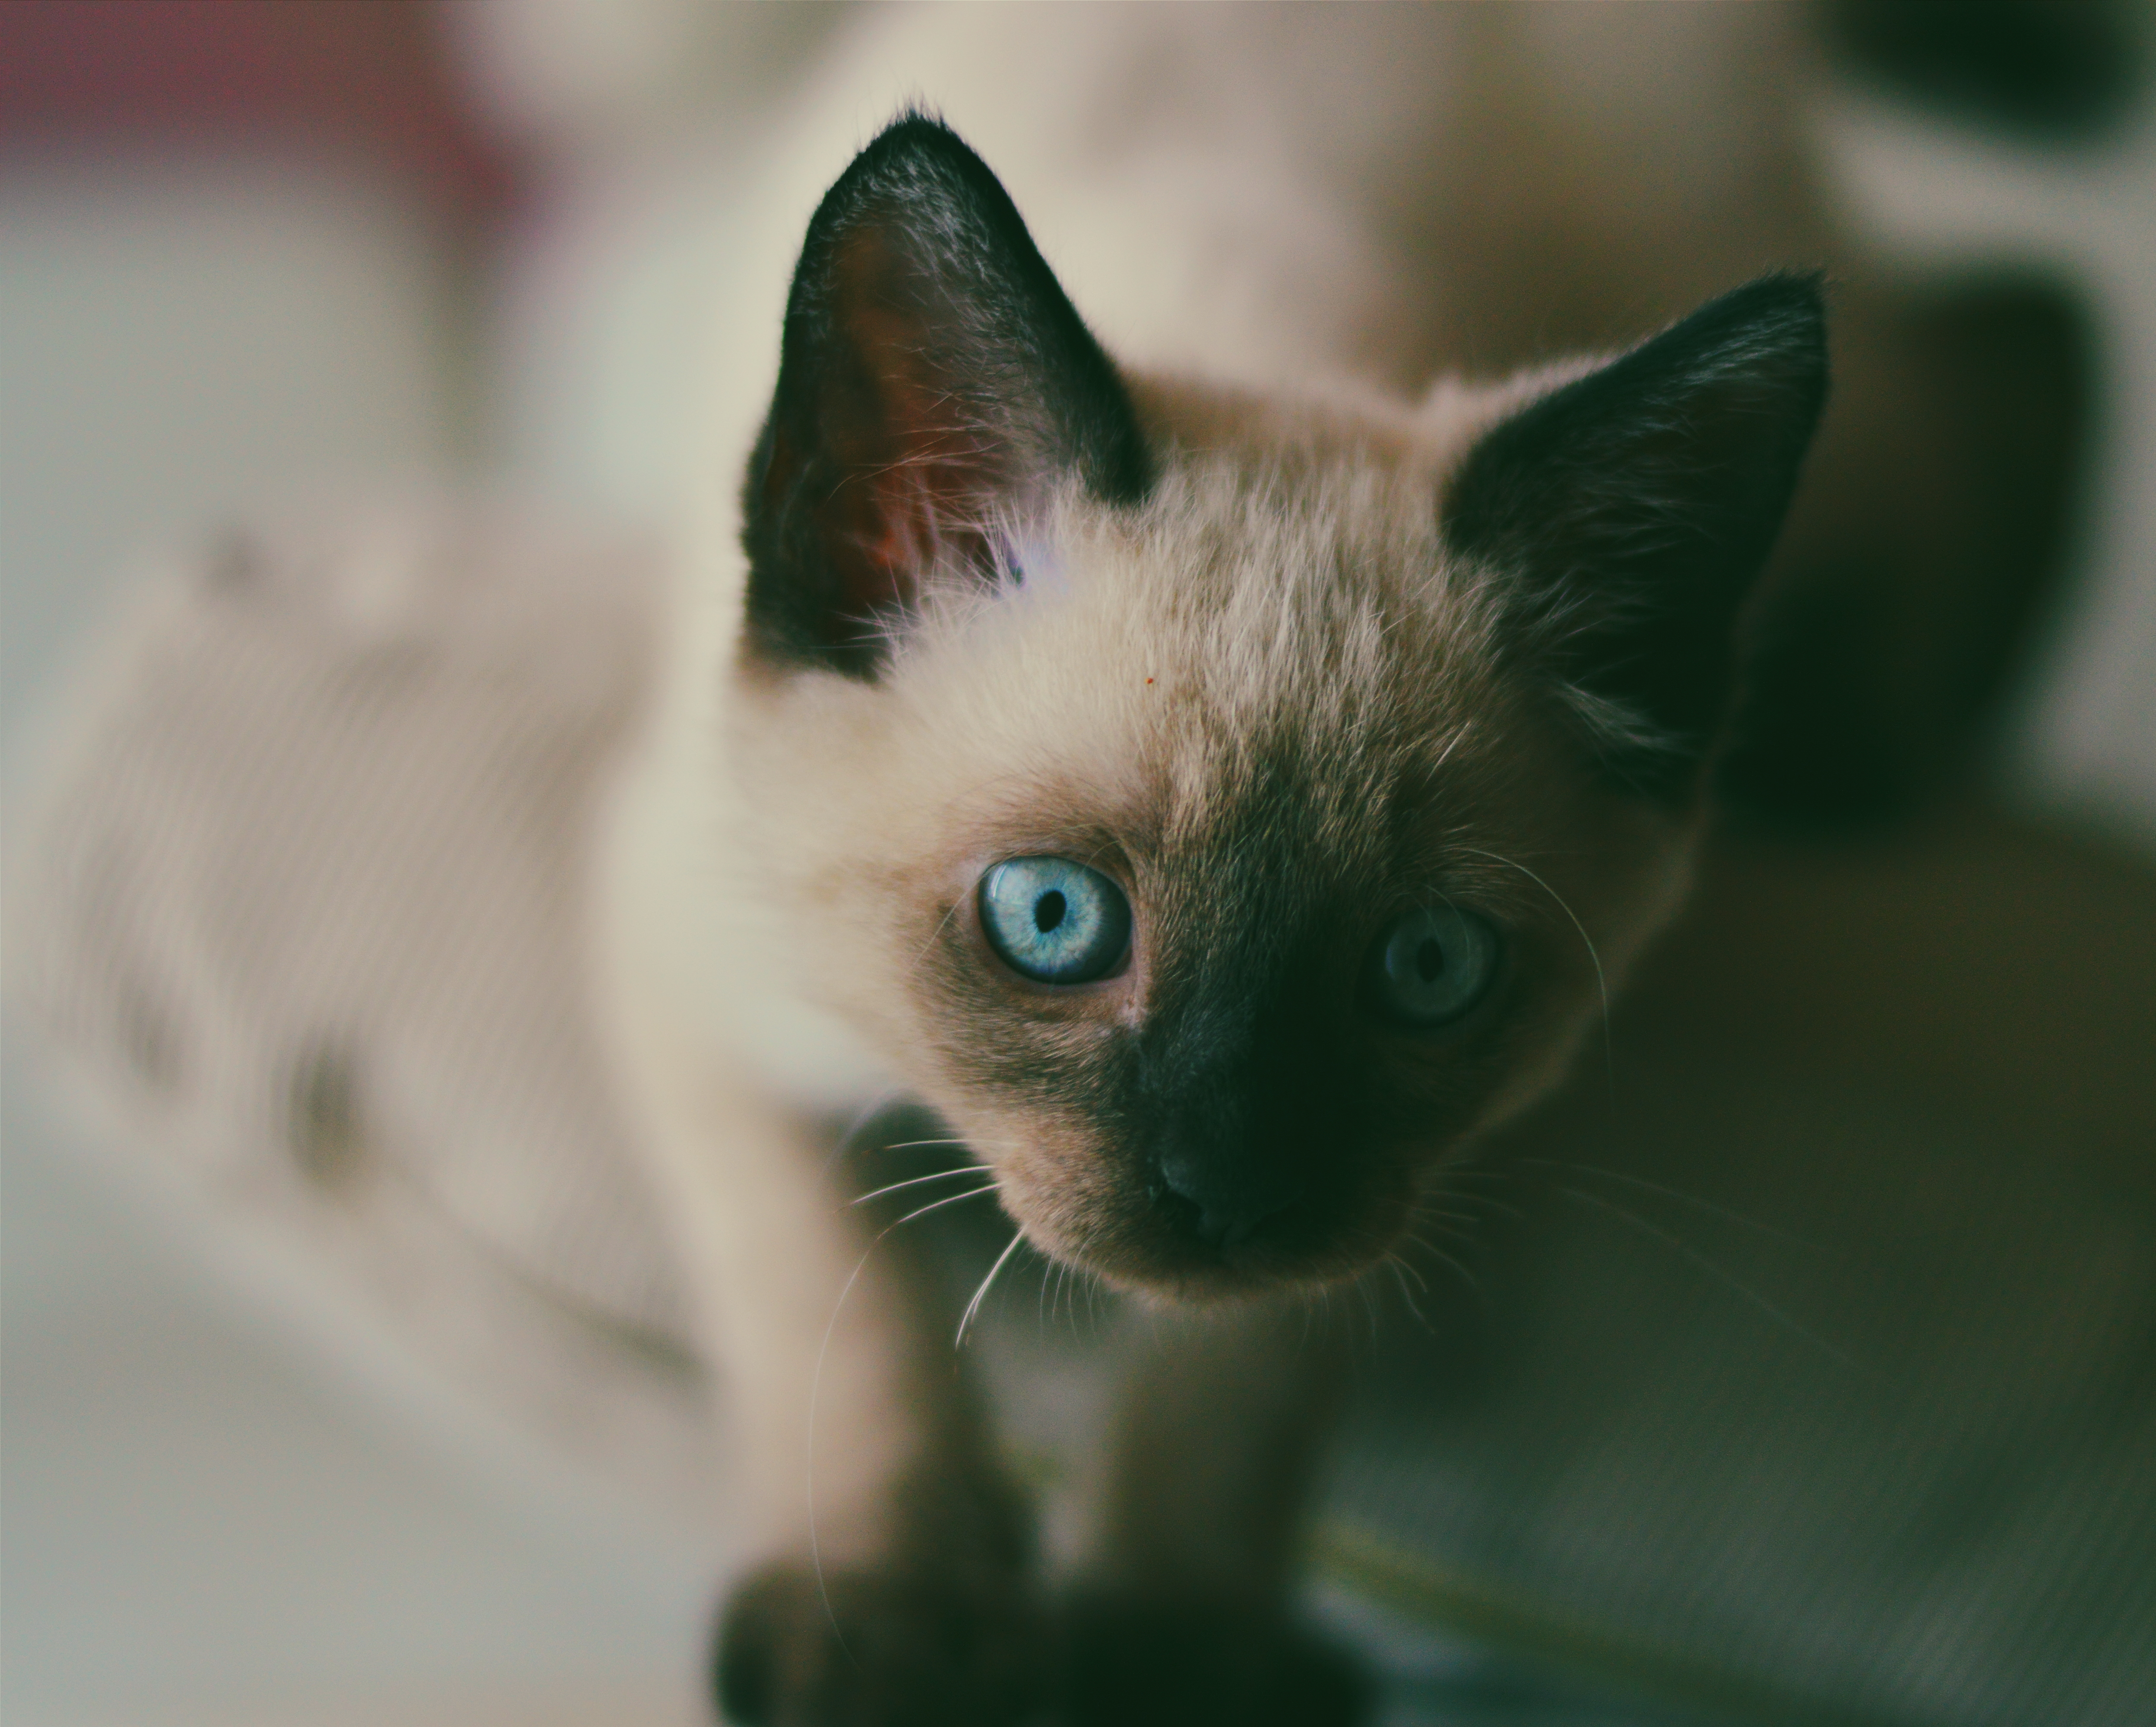 105798 download wallpaper Animals, Kitty, Kitten, Siamese, Muzzle, Blue Eyed, Blue-Eyed screensavers and pictures for free